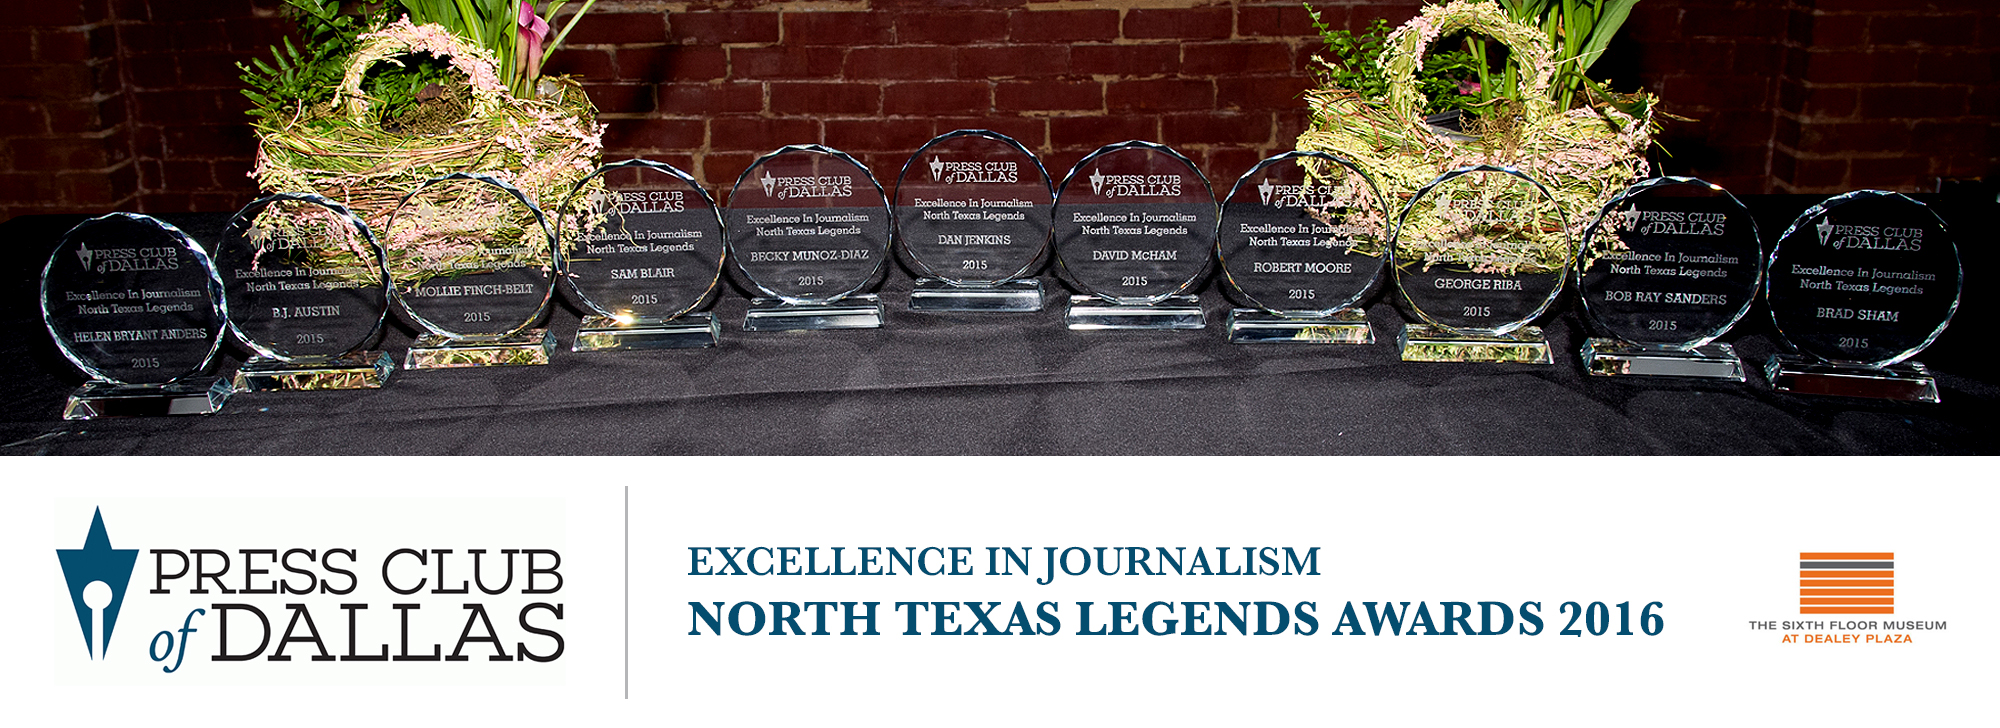 North Texas Legends Awards 2016